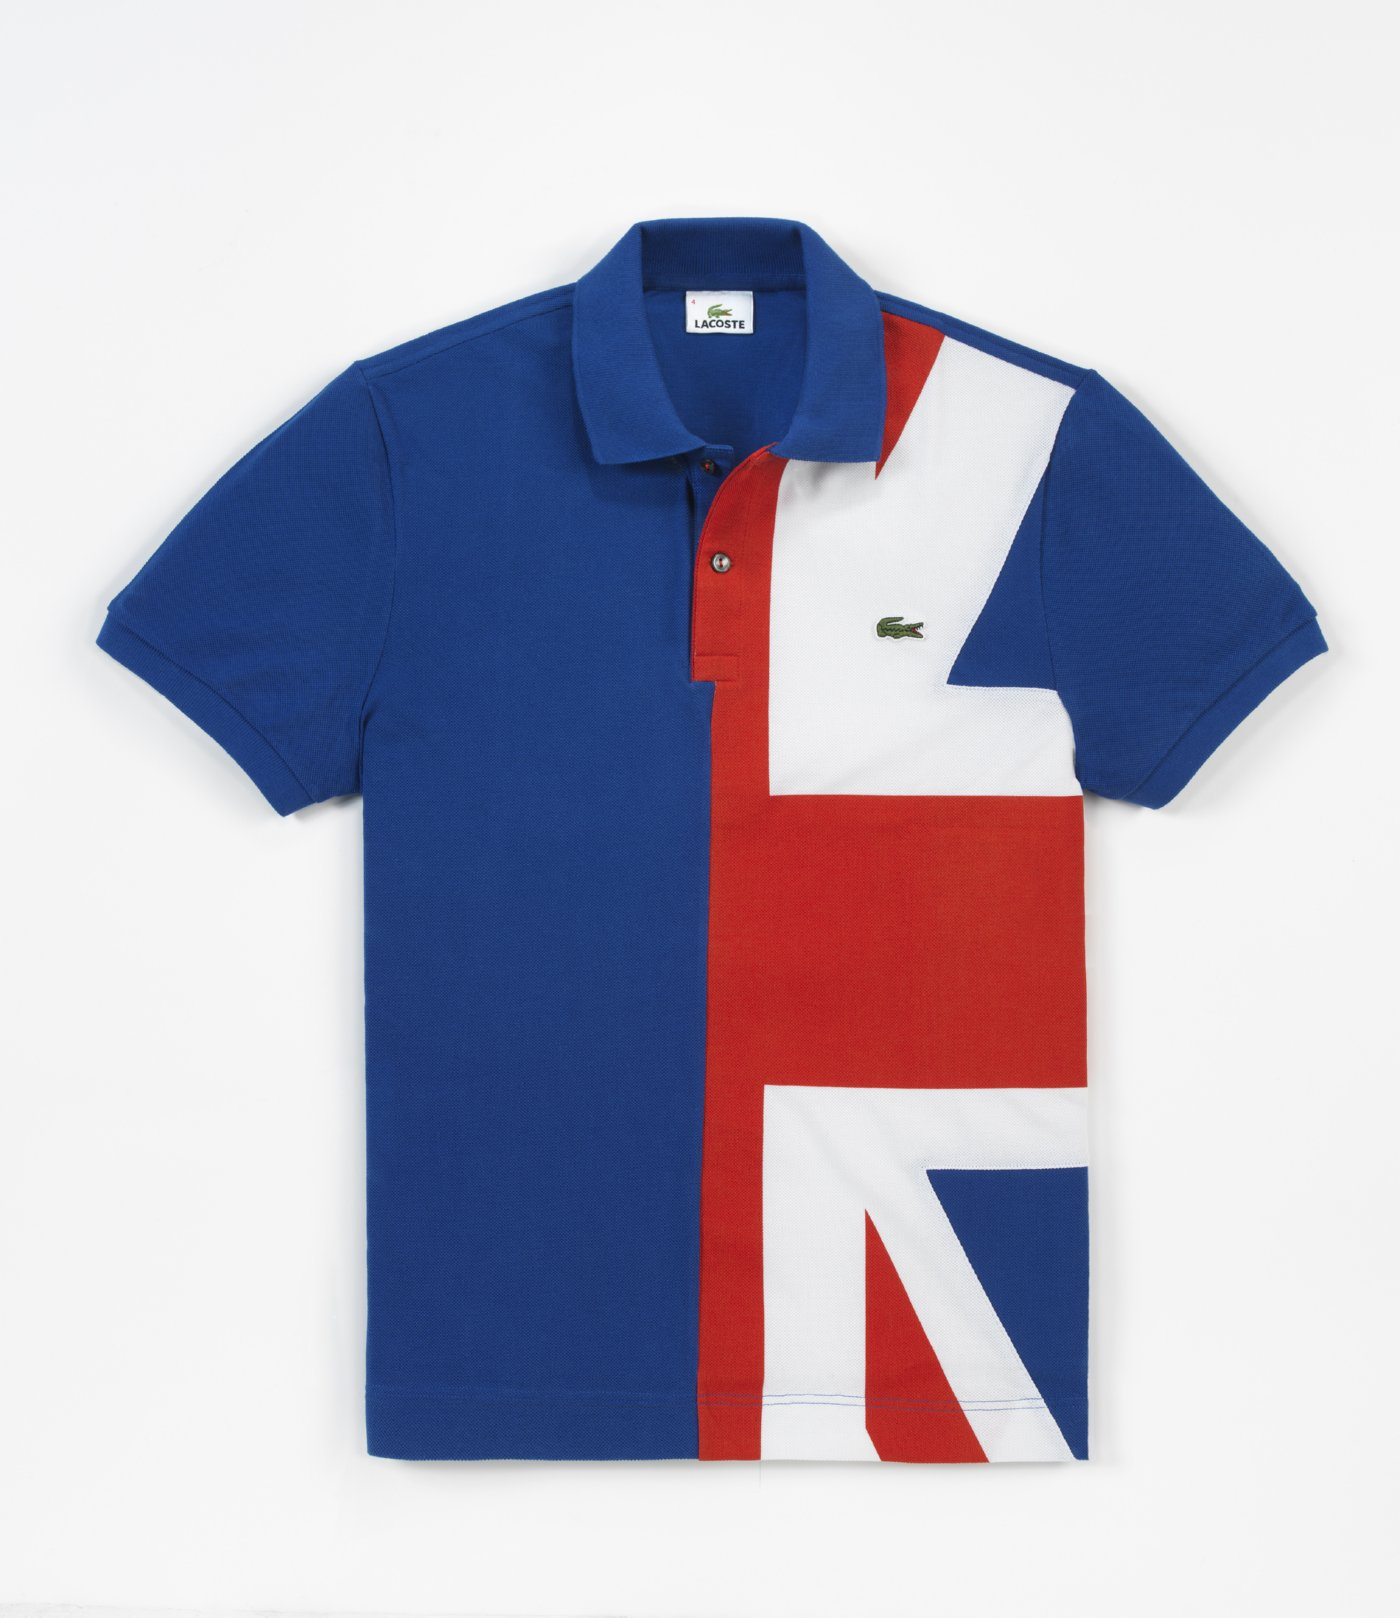 lacoste_flag_polo_shirt_-_great_britain.jpg